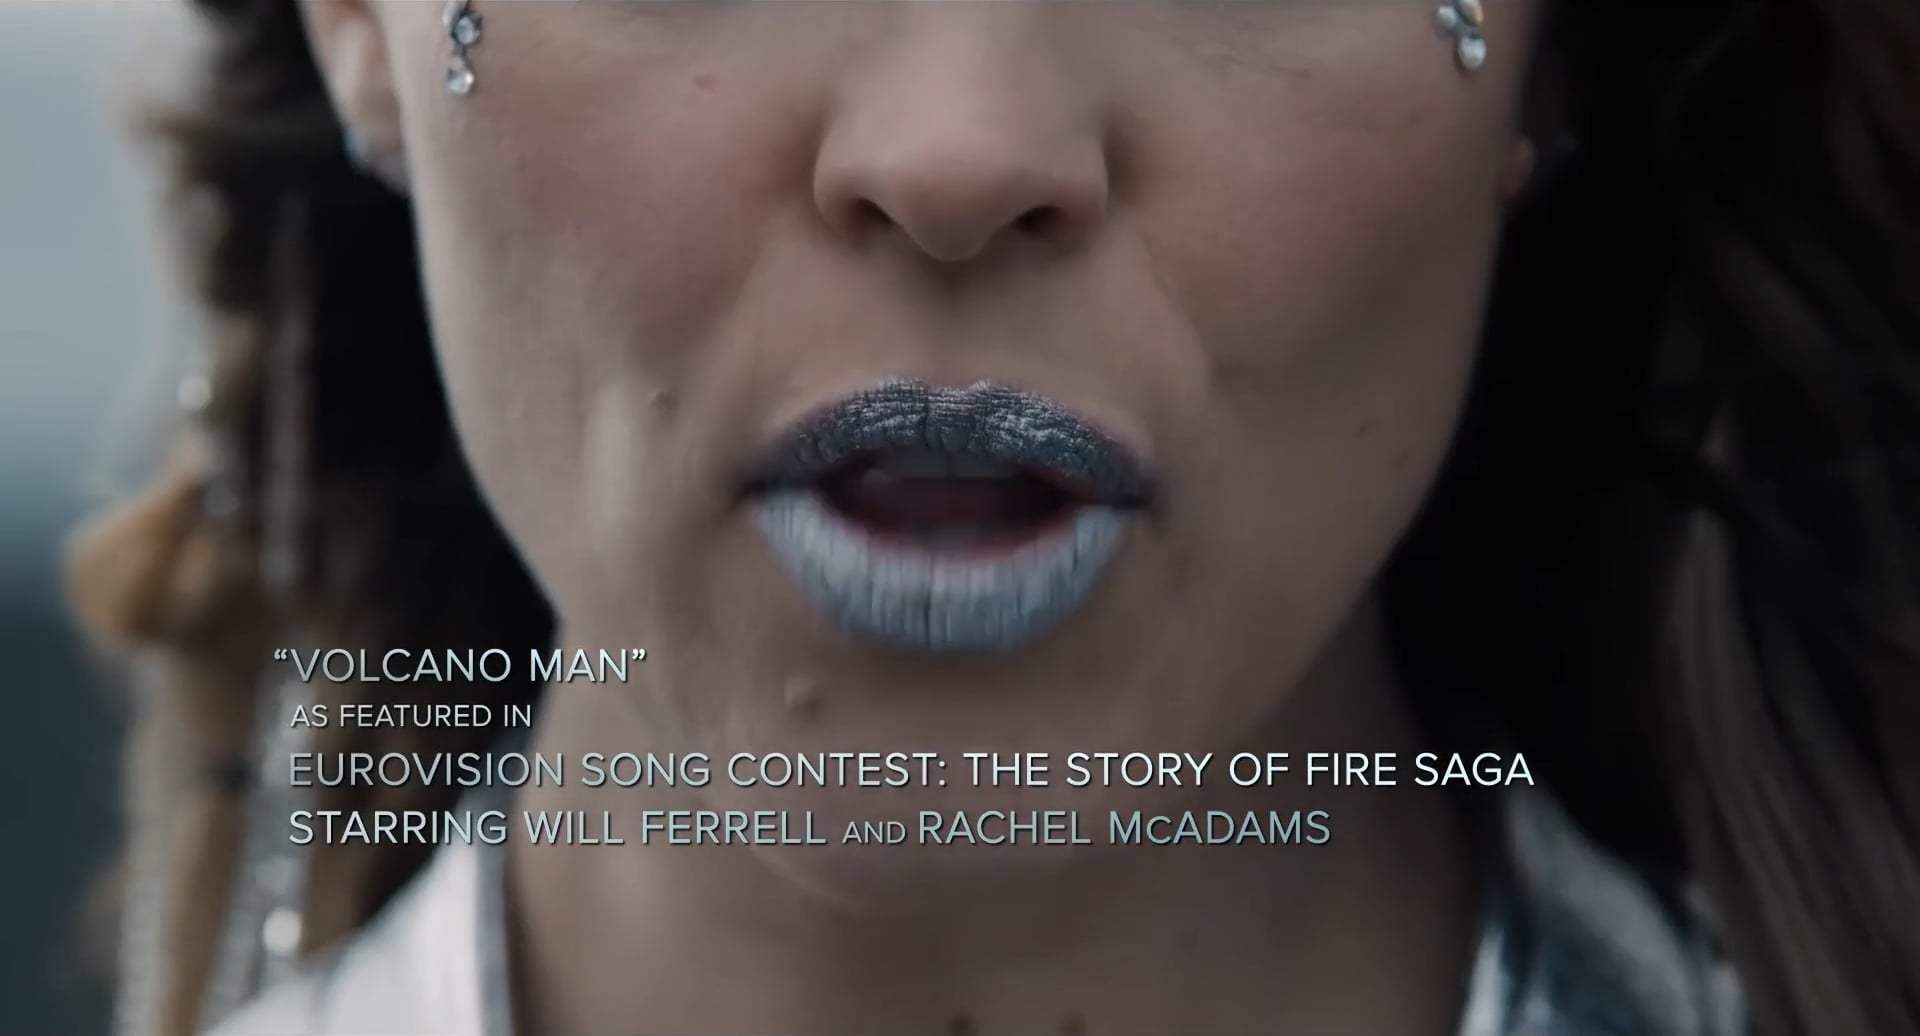 Eurovision Song Contest: The Story of Fire Saga Volcano Man Trailer (2020) Screen Capture #1